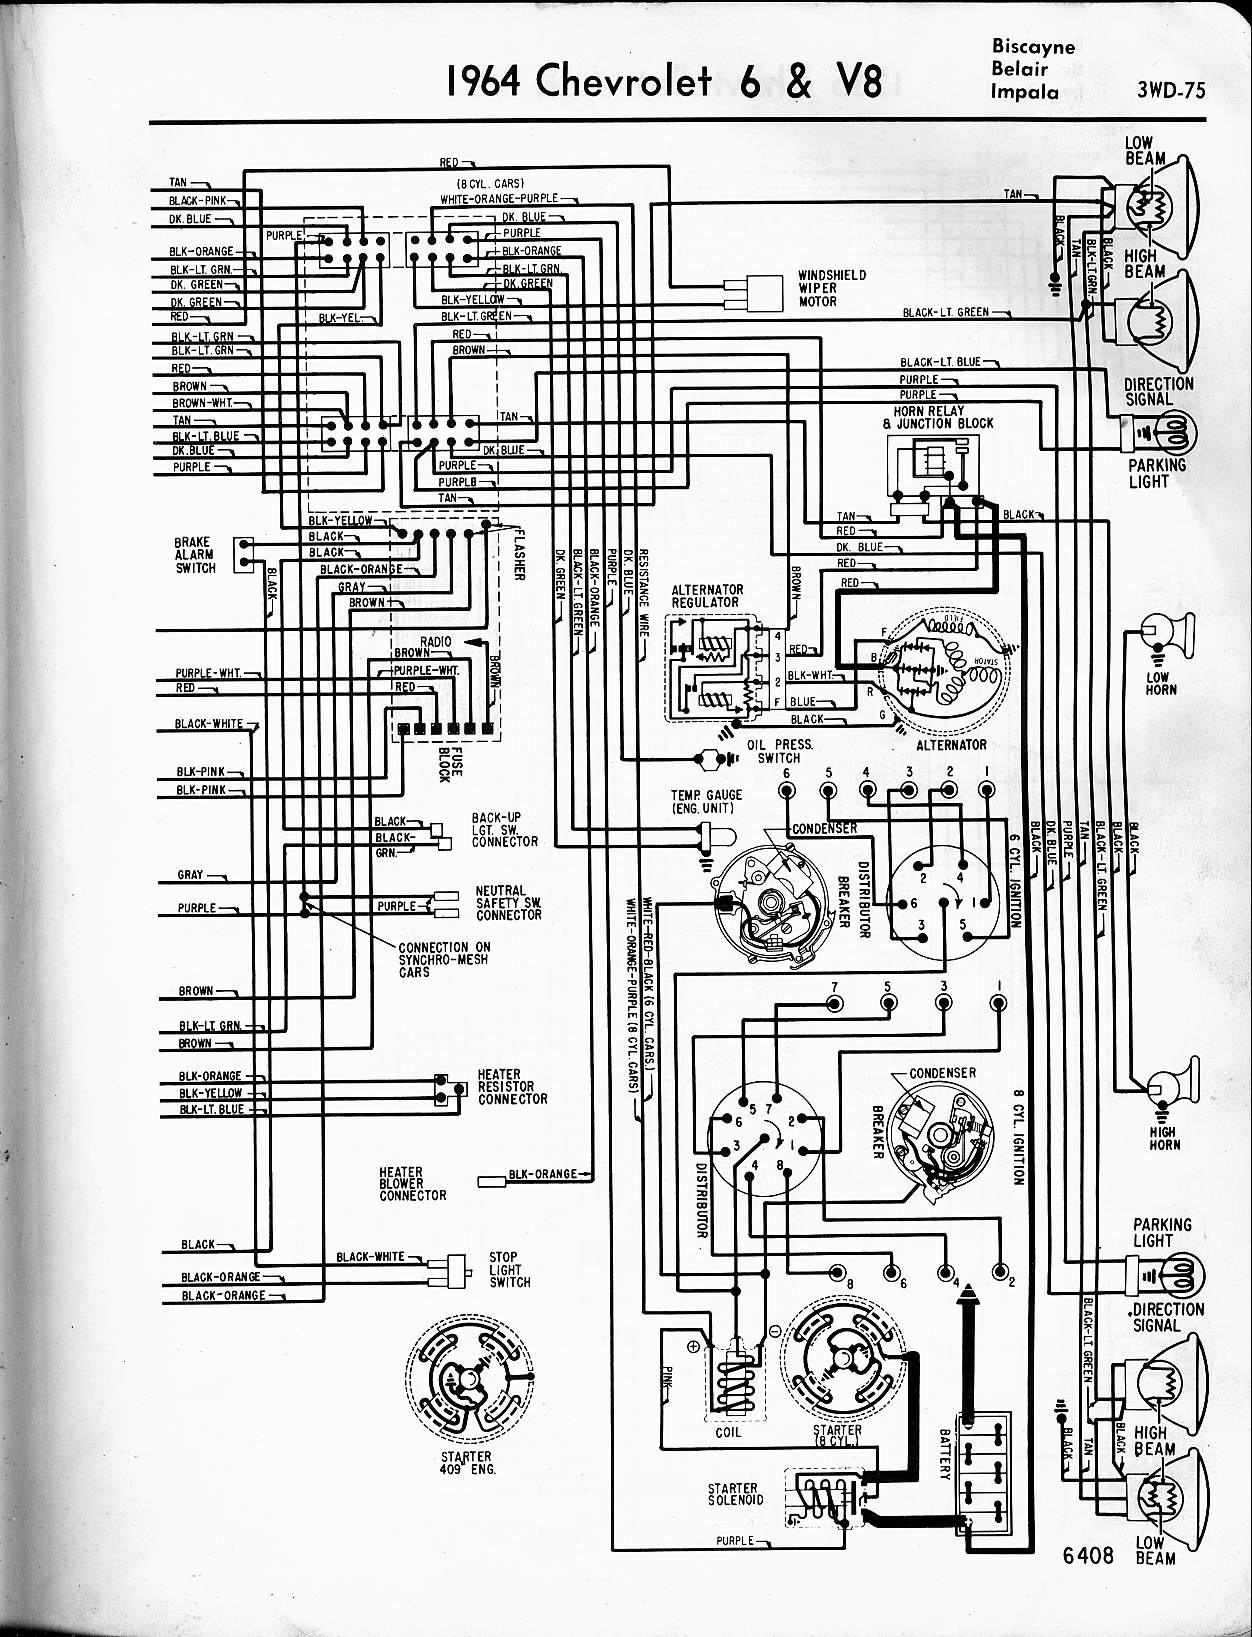 MWireChev64_3WD 075 57 65 chevy wiring diagrams 2003 impala ignition switch wiring diagram at bakdesigns.co